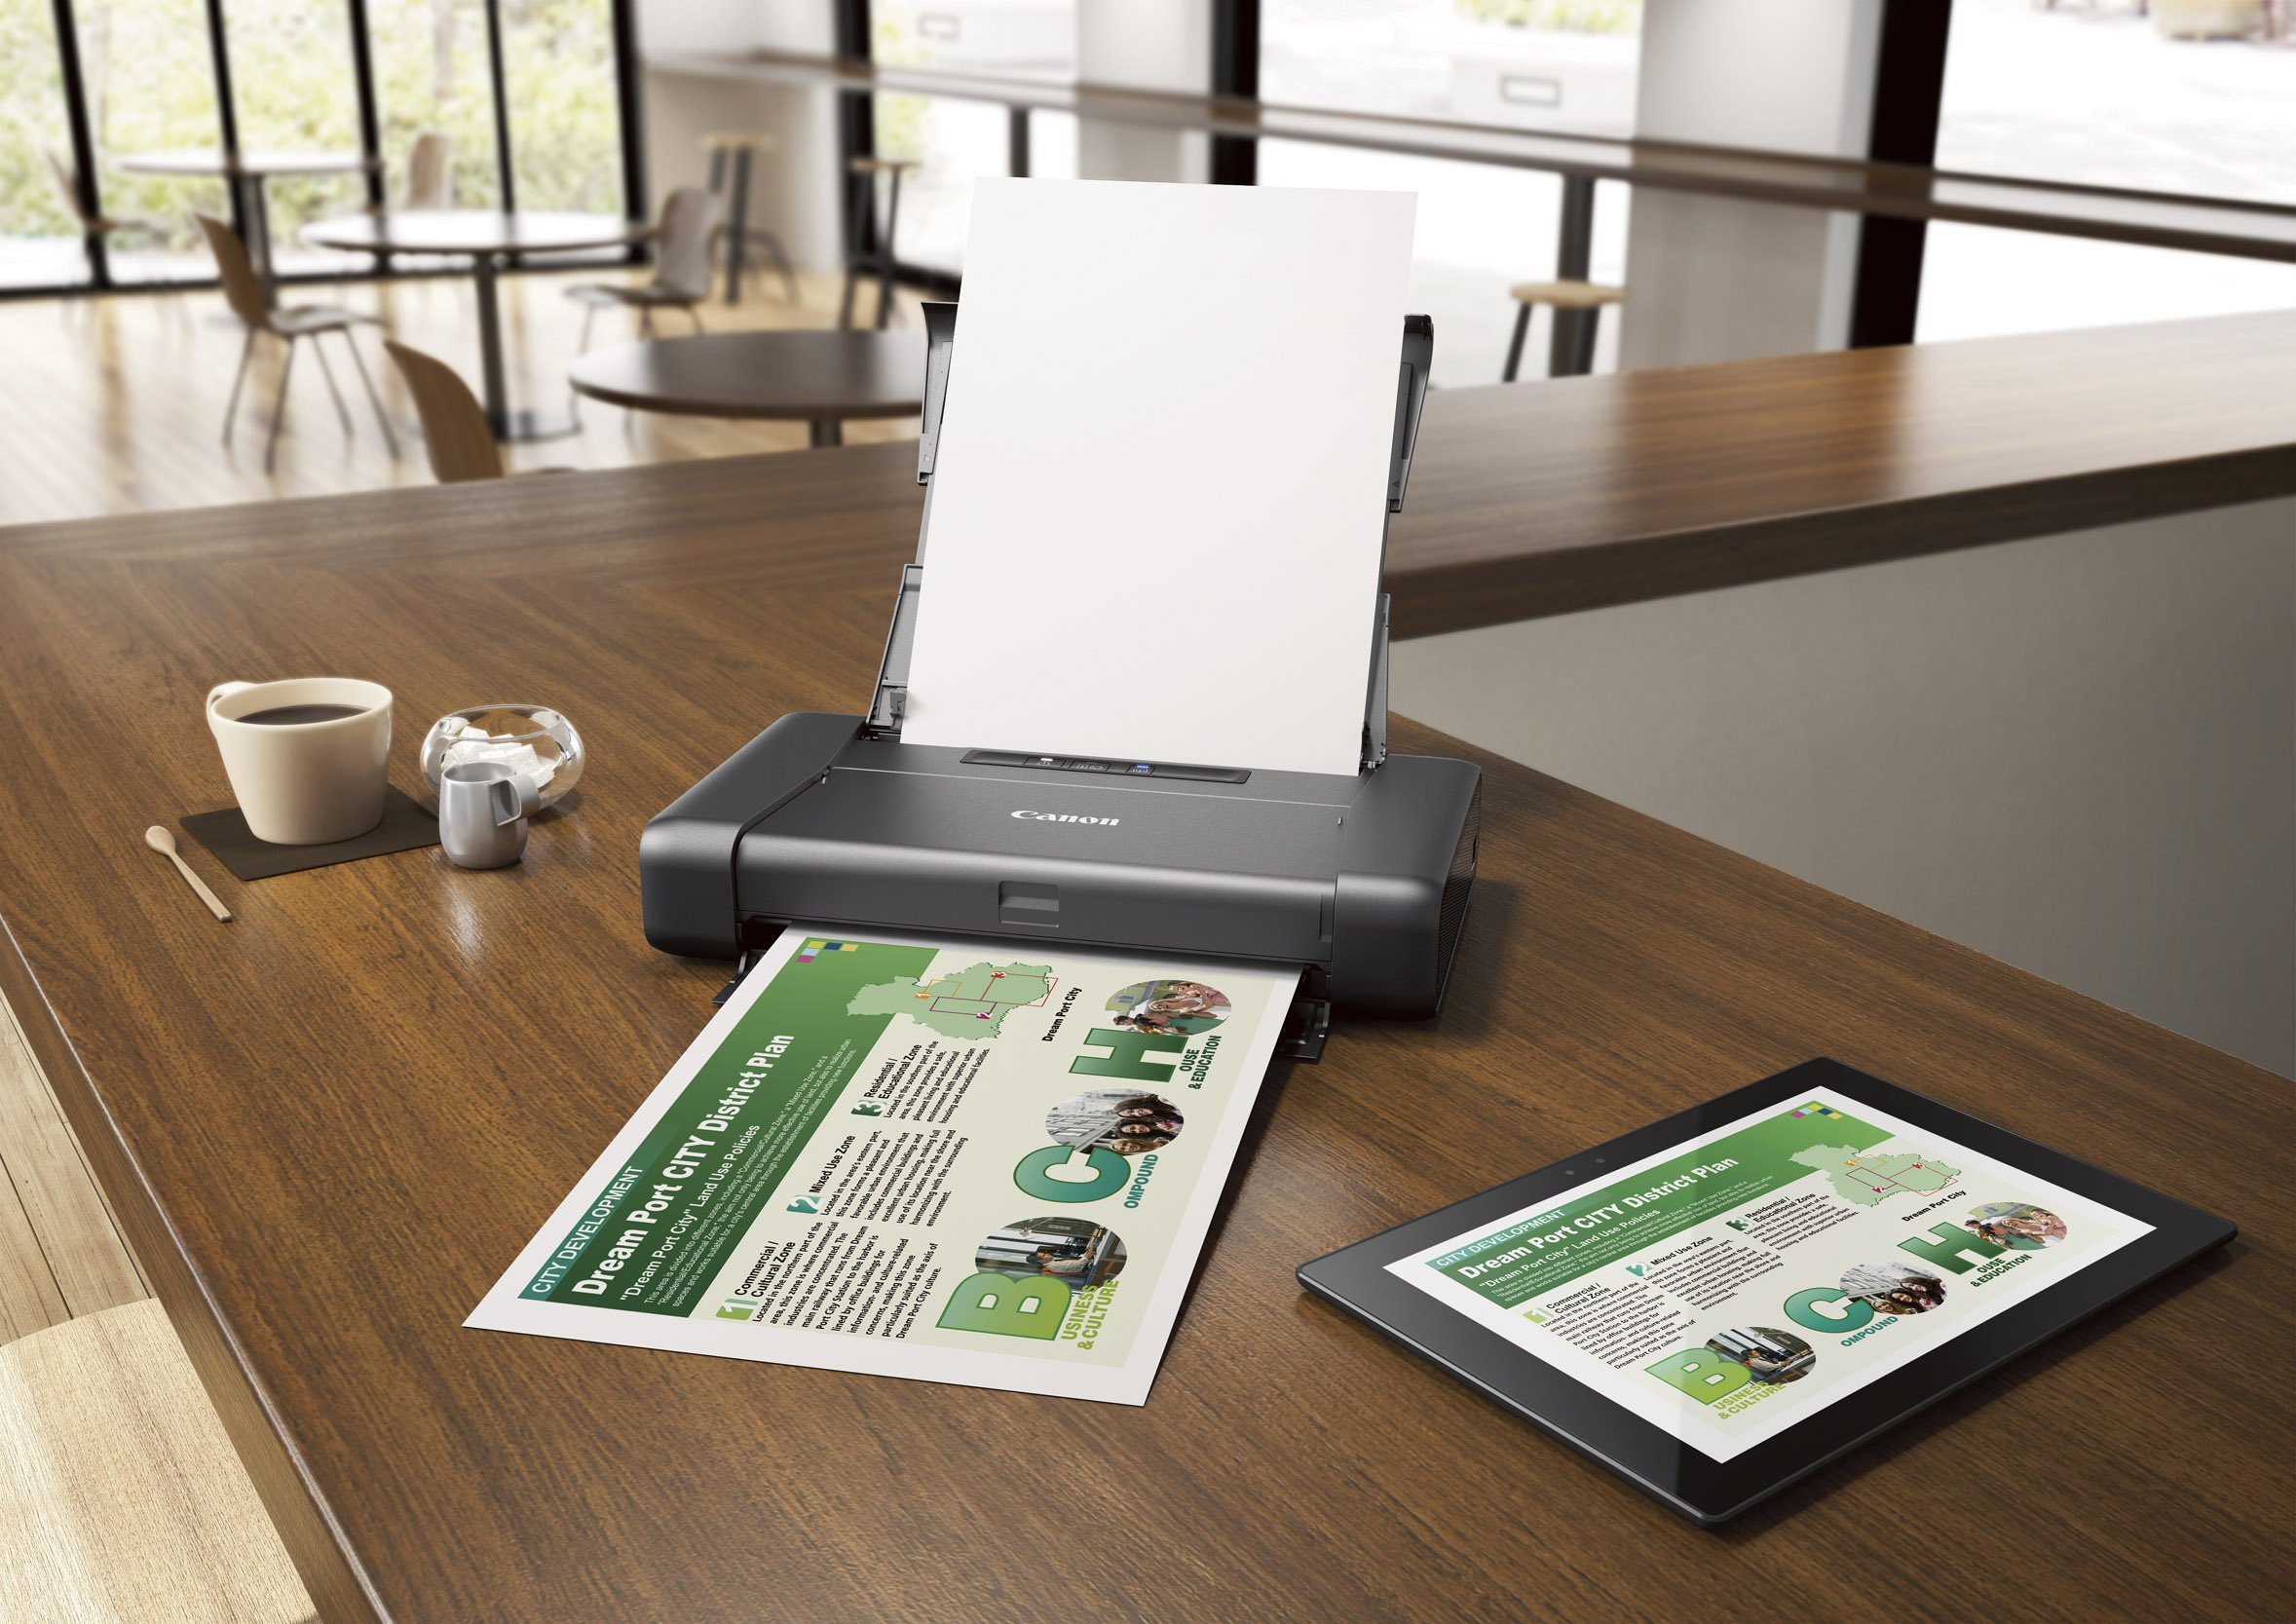 CANON PIXMA iP110 Wireless Mobile Printer With